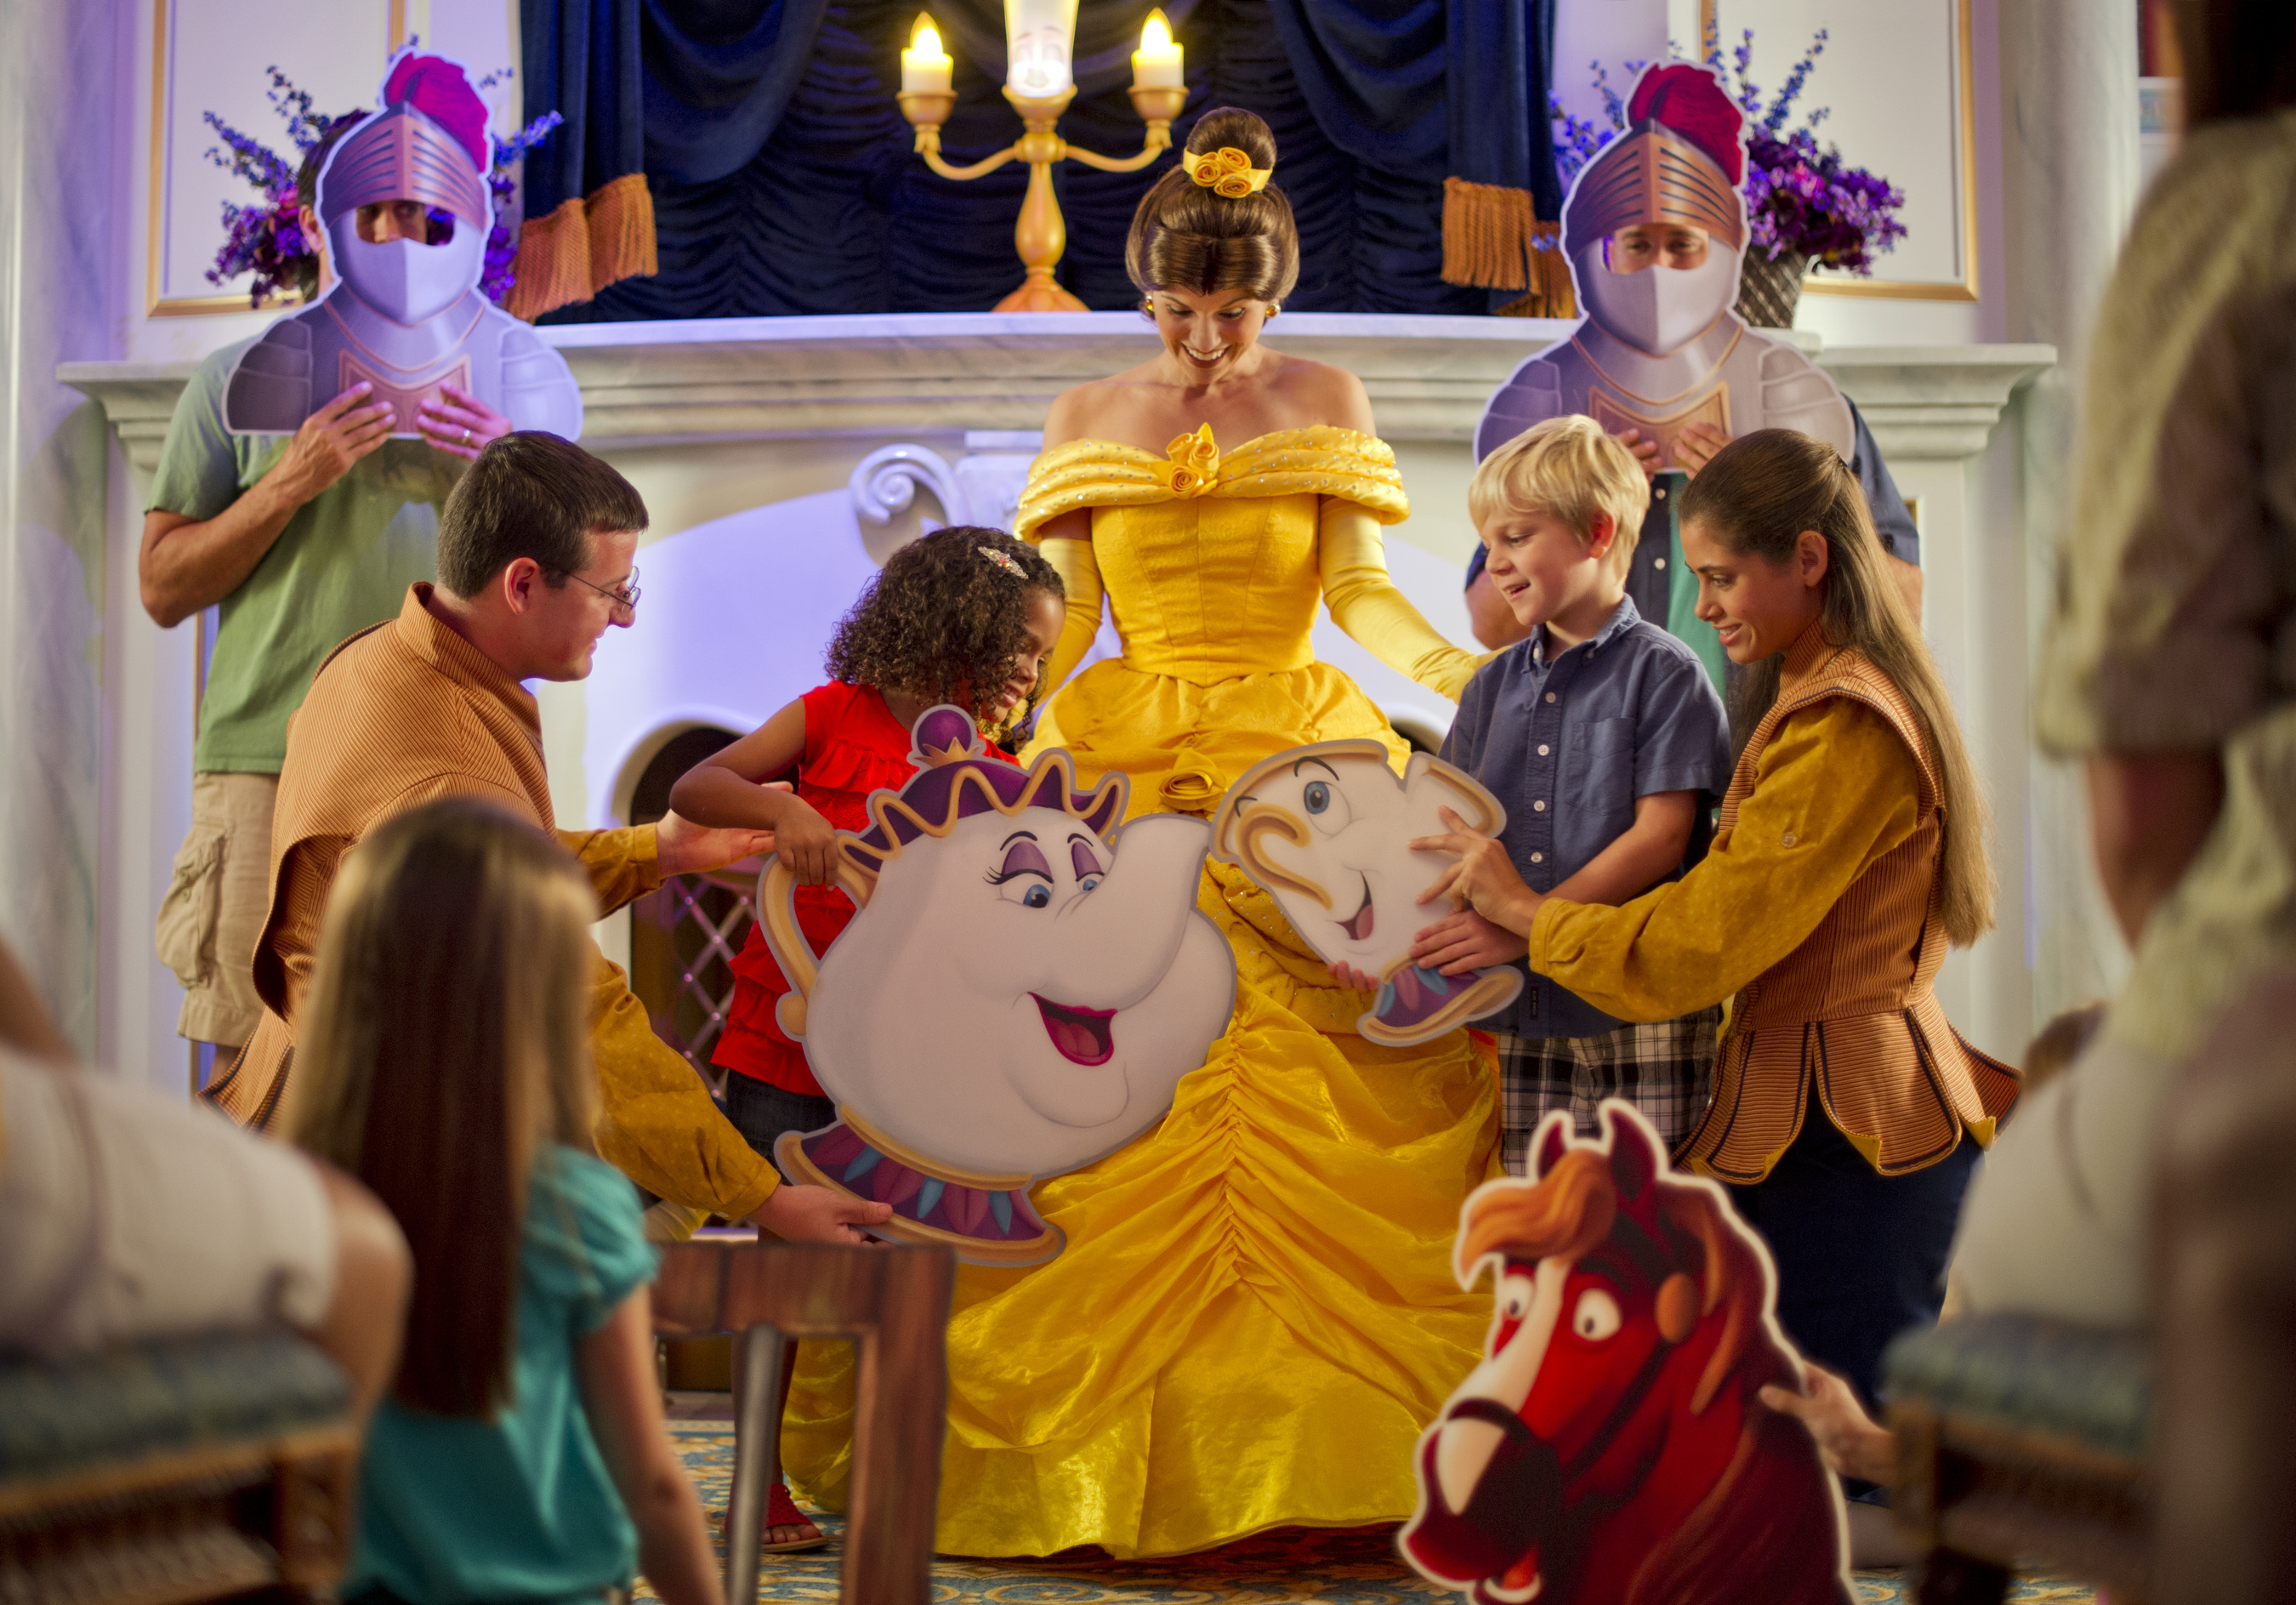 New fantasyland guests live out their beauty and the beast dreams new fantasyland guests live out their beauty and the beast dreams meet a disney princess at enchanted tales with belle walt disney world news m4hsunfo